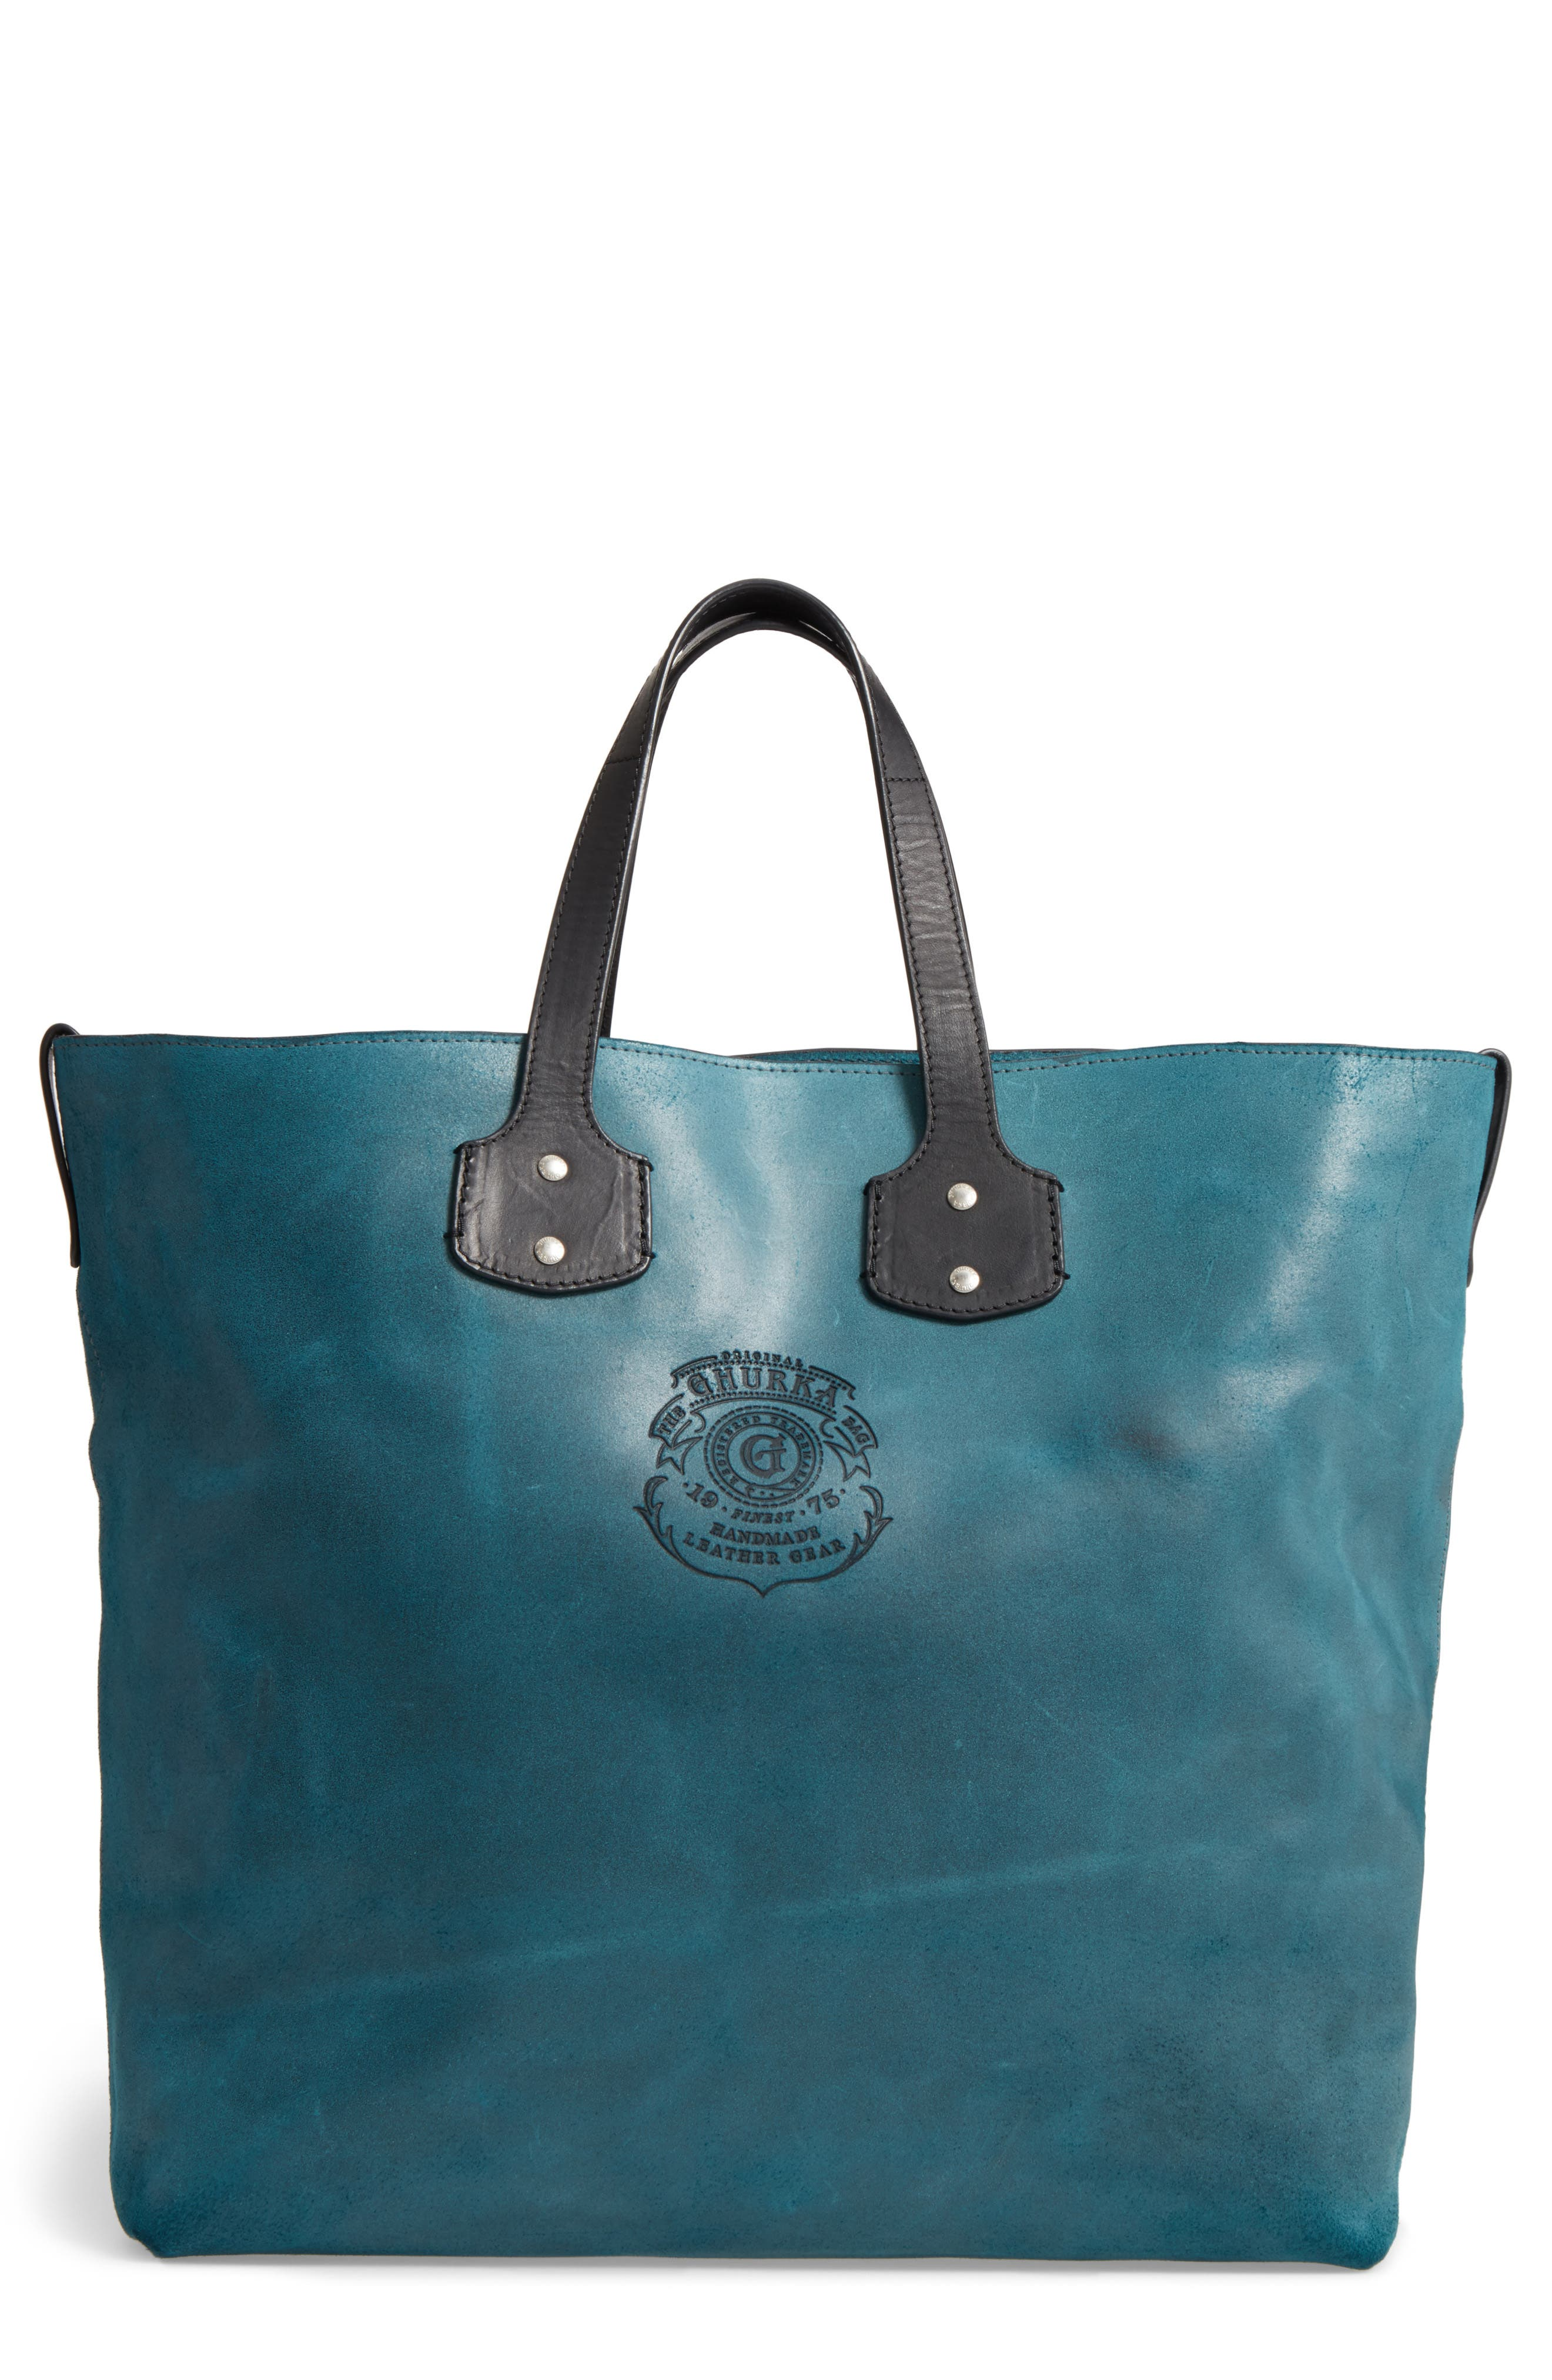 Main Image - Ghurka Broadway II Leather Tote